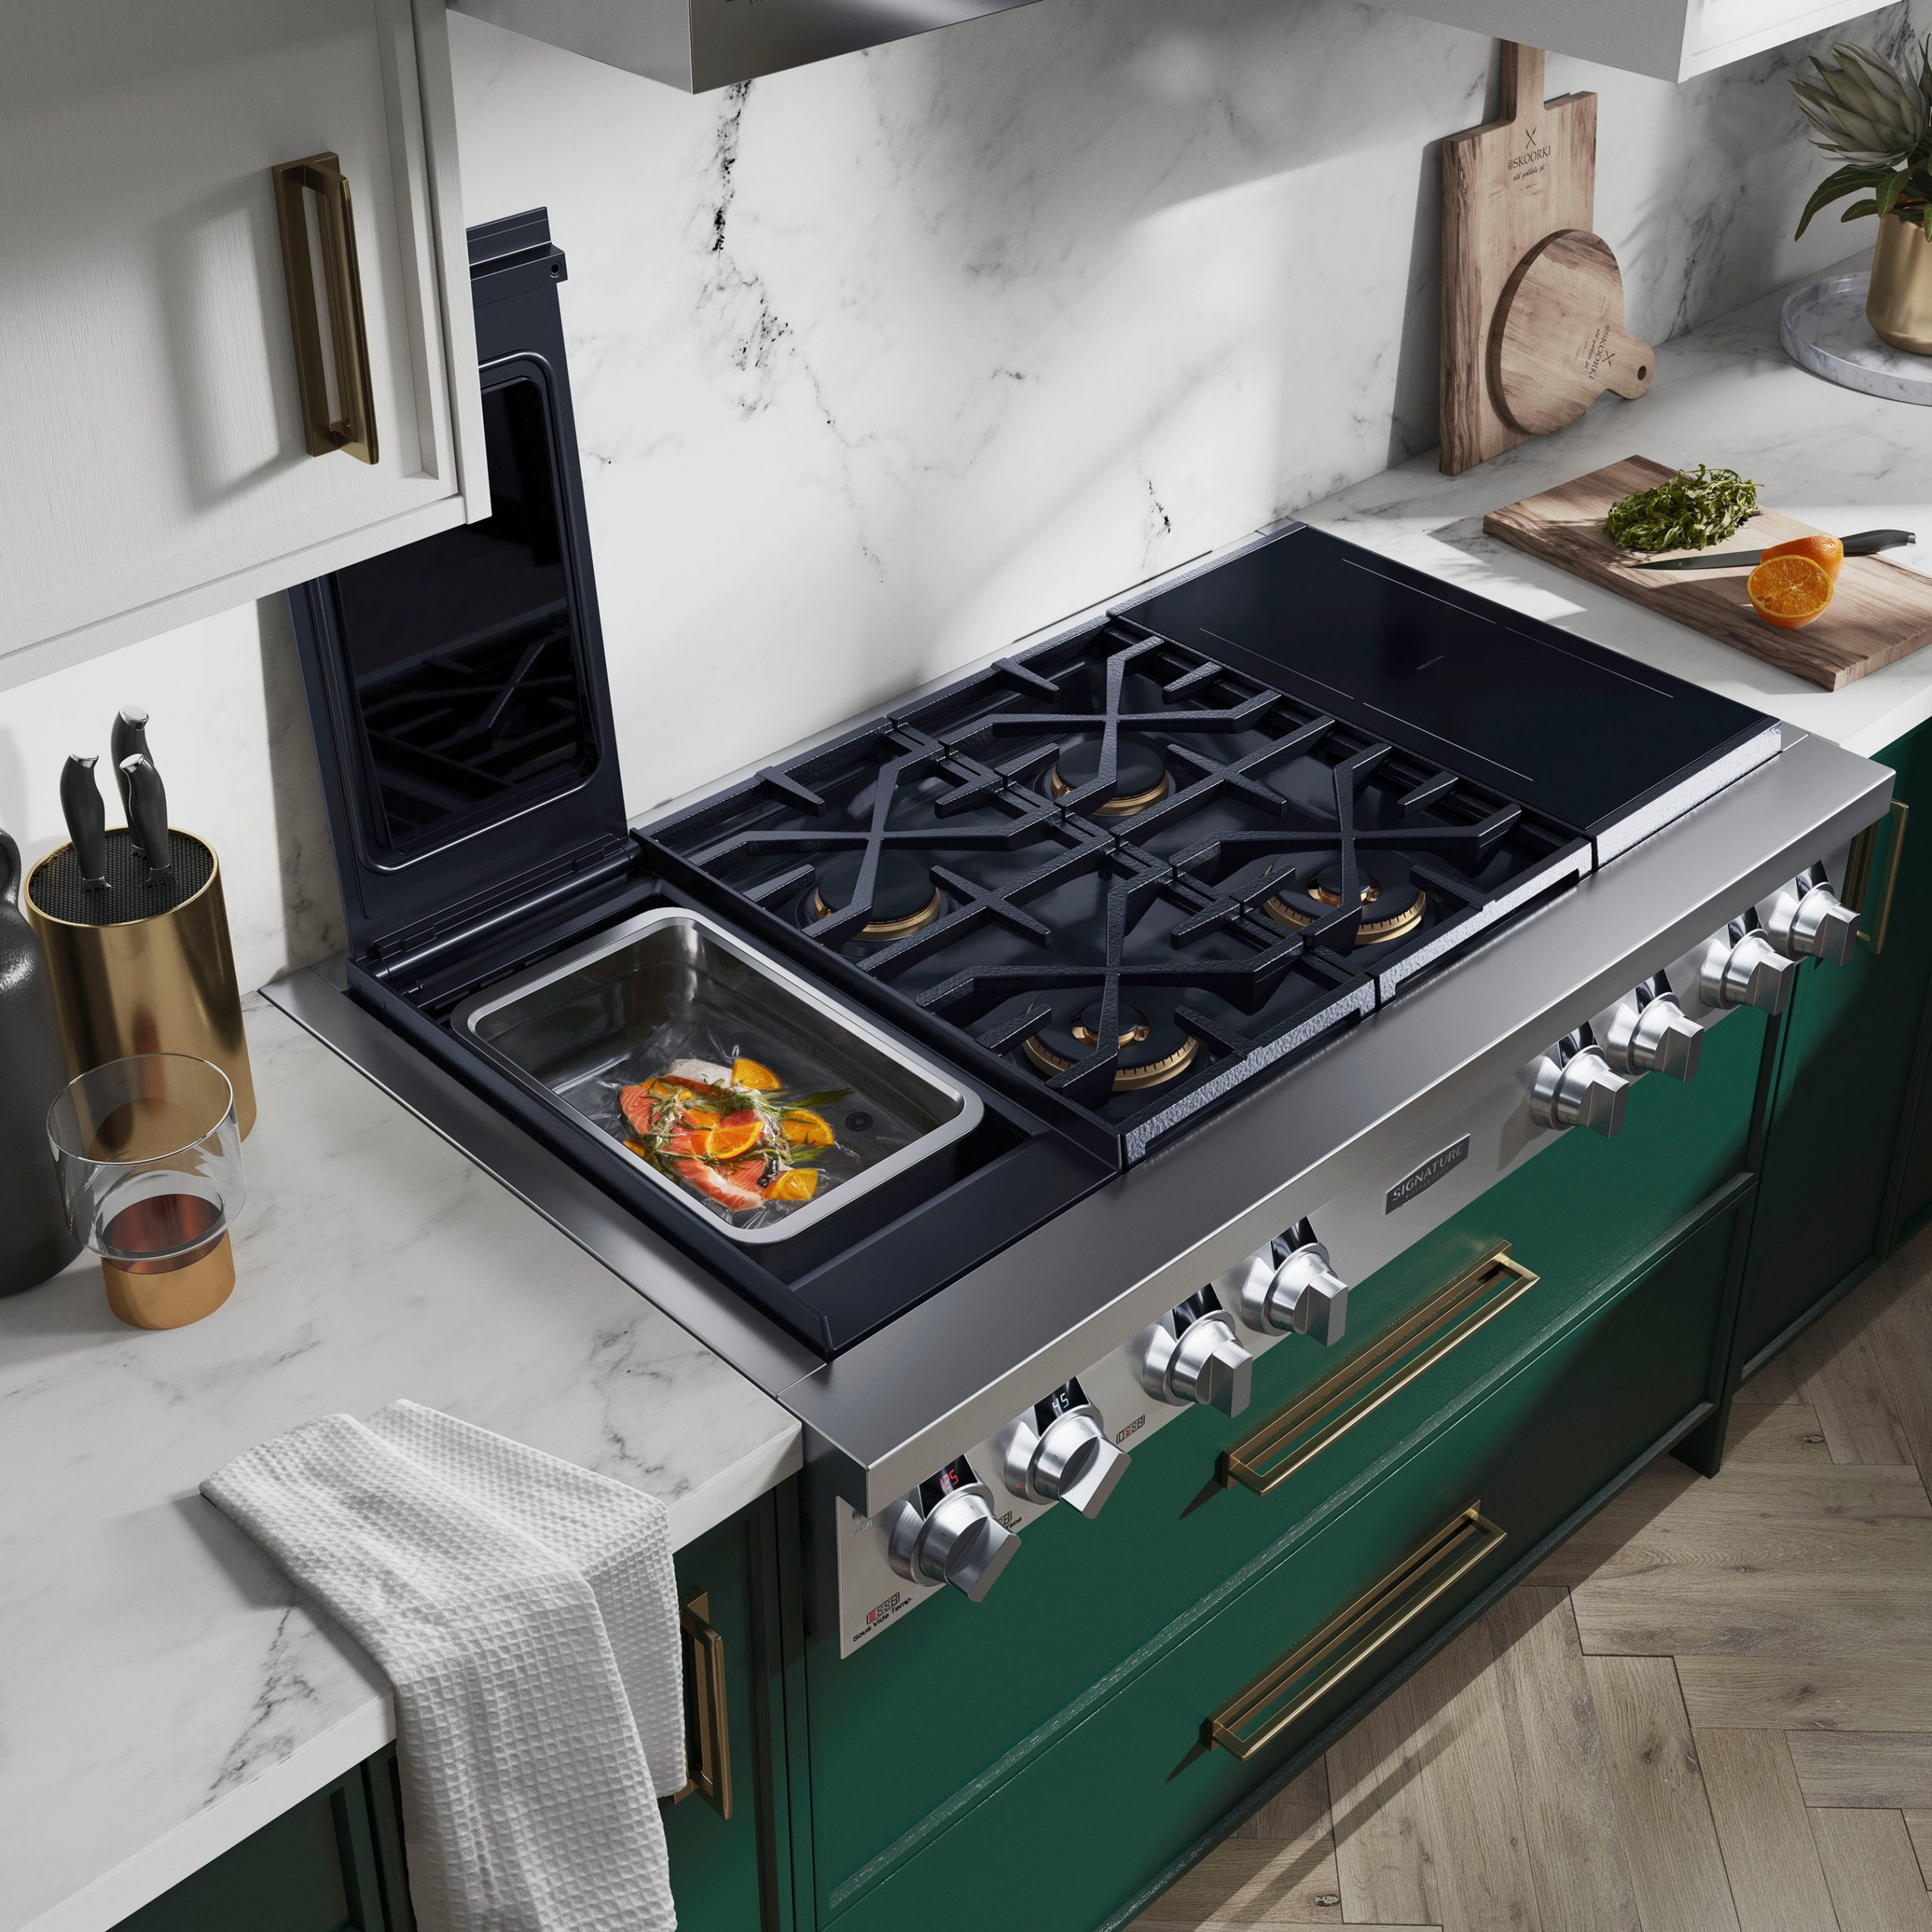 Signature Kitchen Suite is debuting its broadened portfolio of industry-first culinary innovations that will join the brand's award-winning line of luxury, built-in appliances.